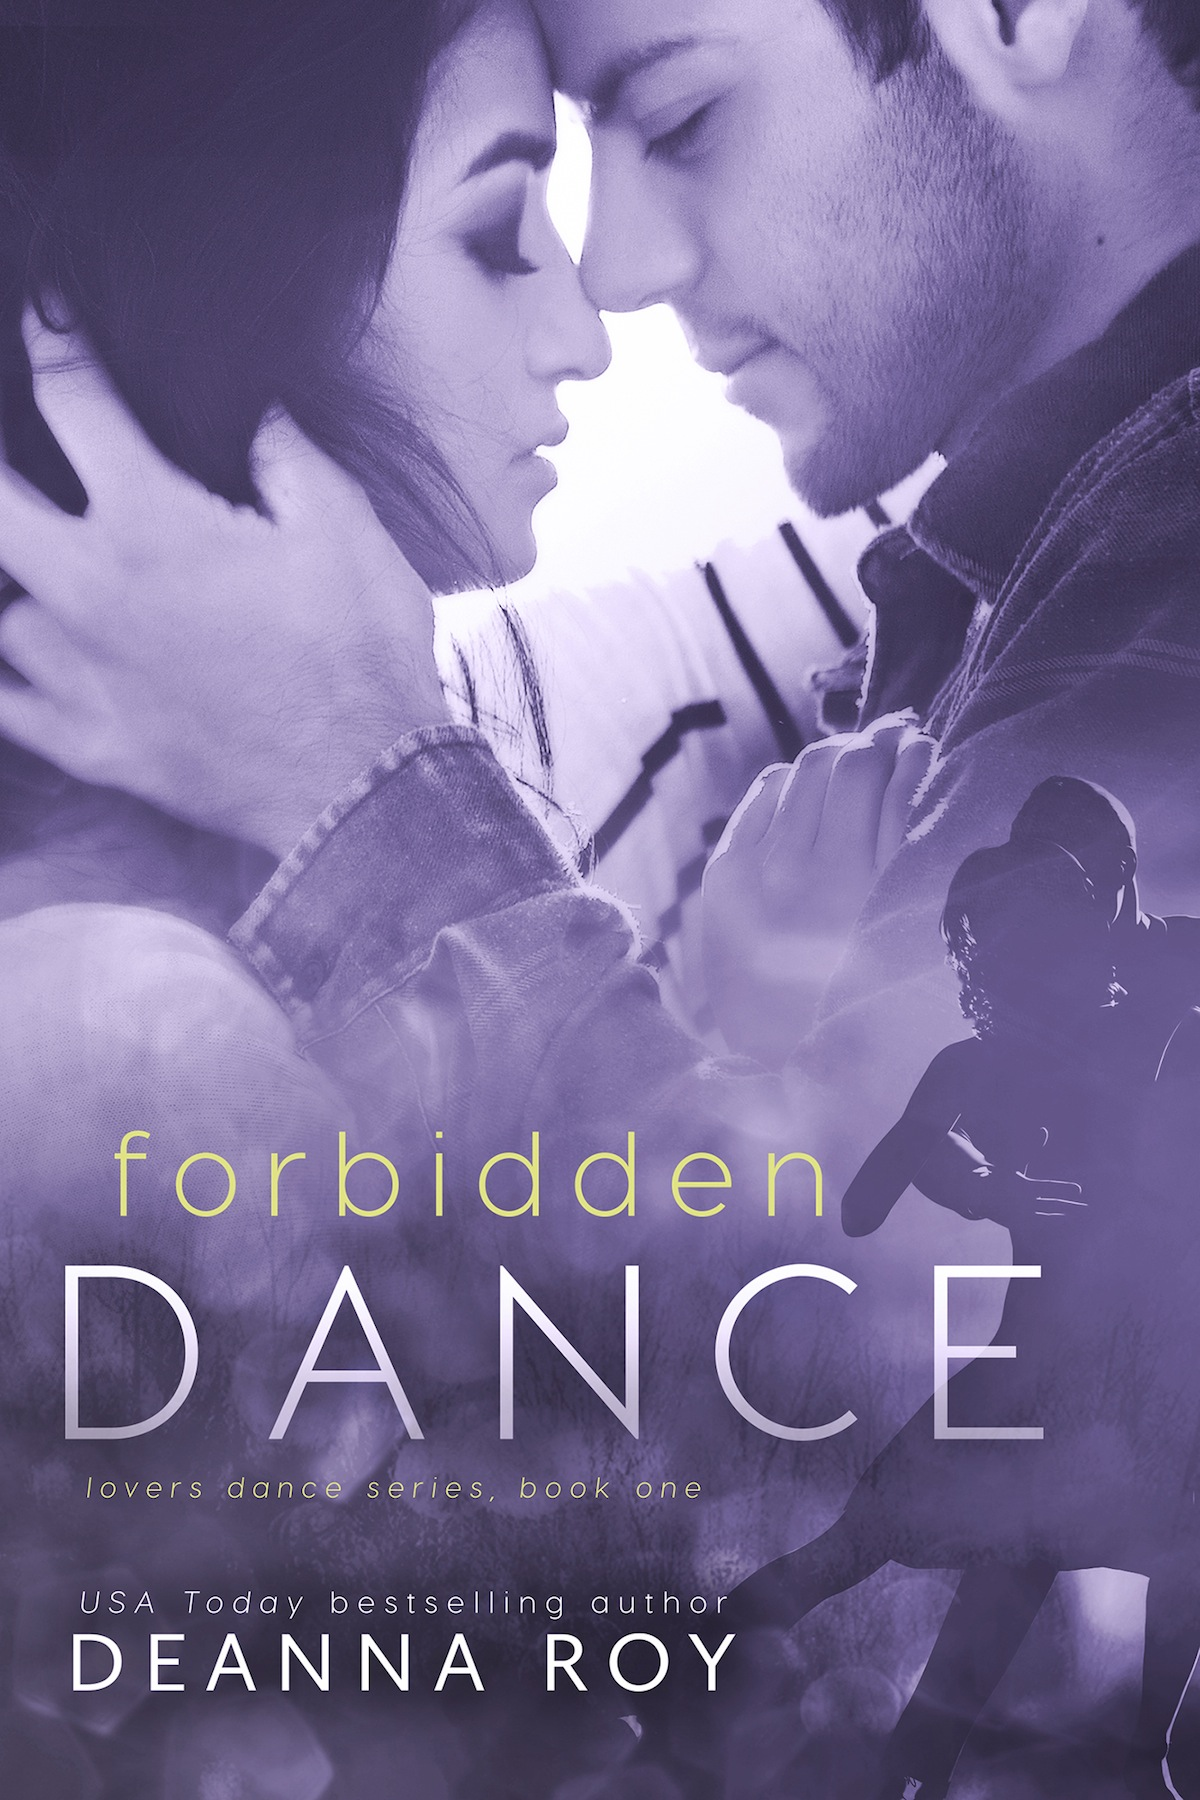 Forbidden Dance by Deanna Roy